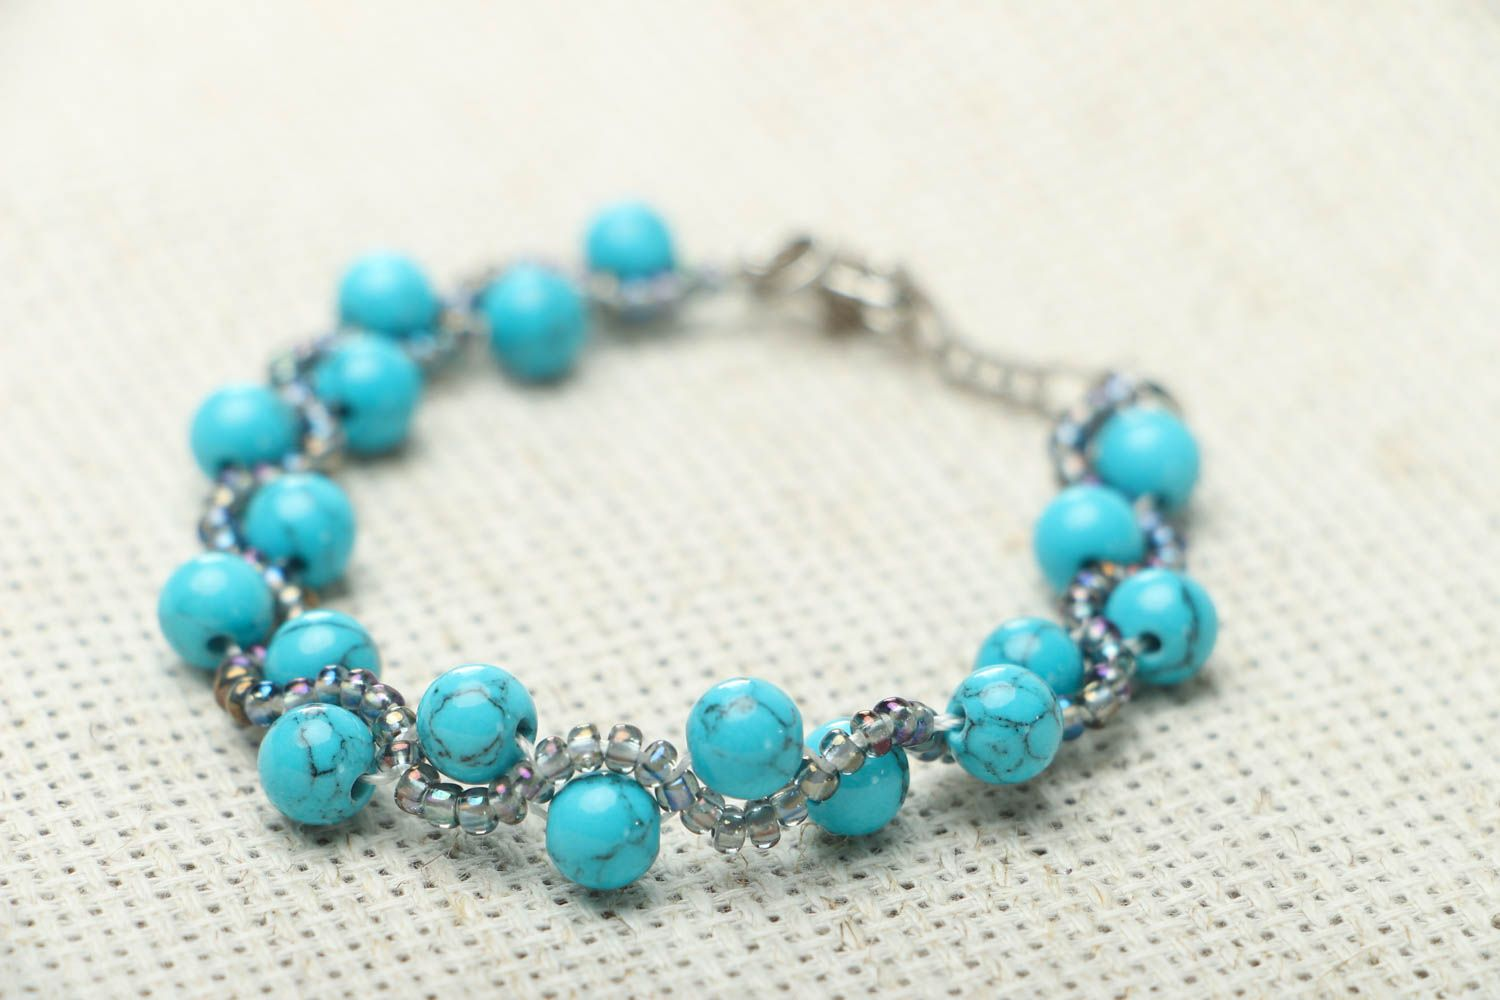 Bracelet with turquoise stone photo 2